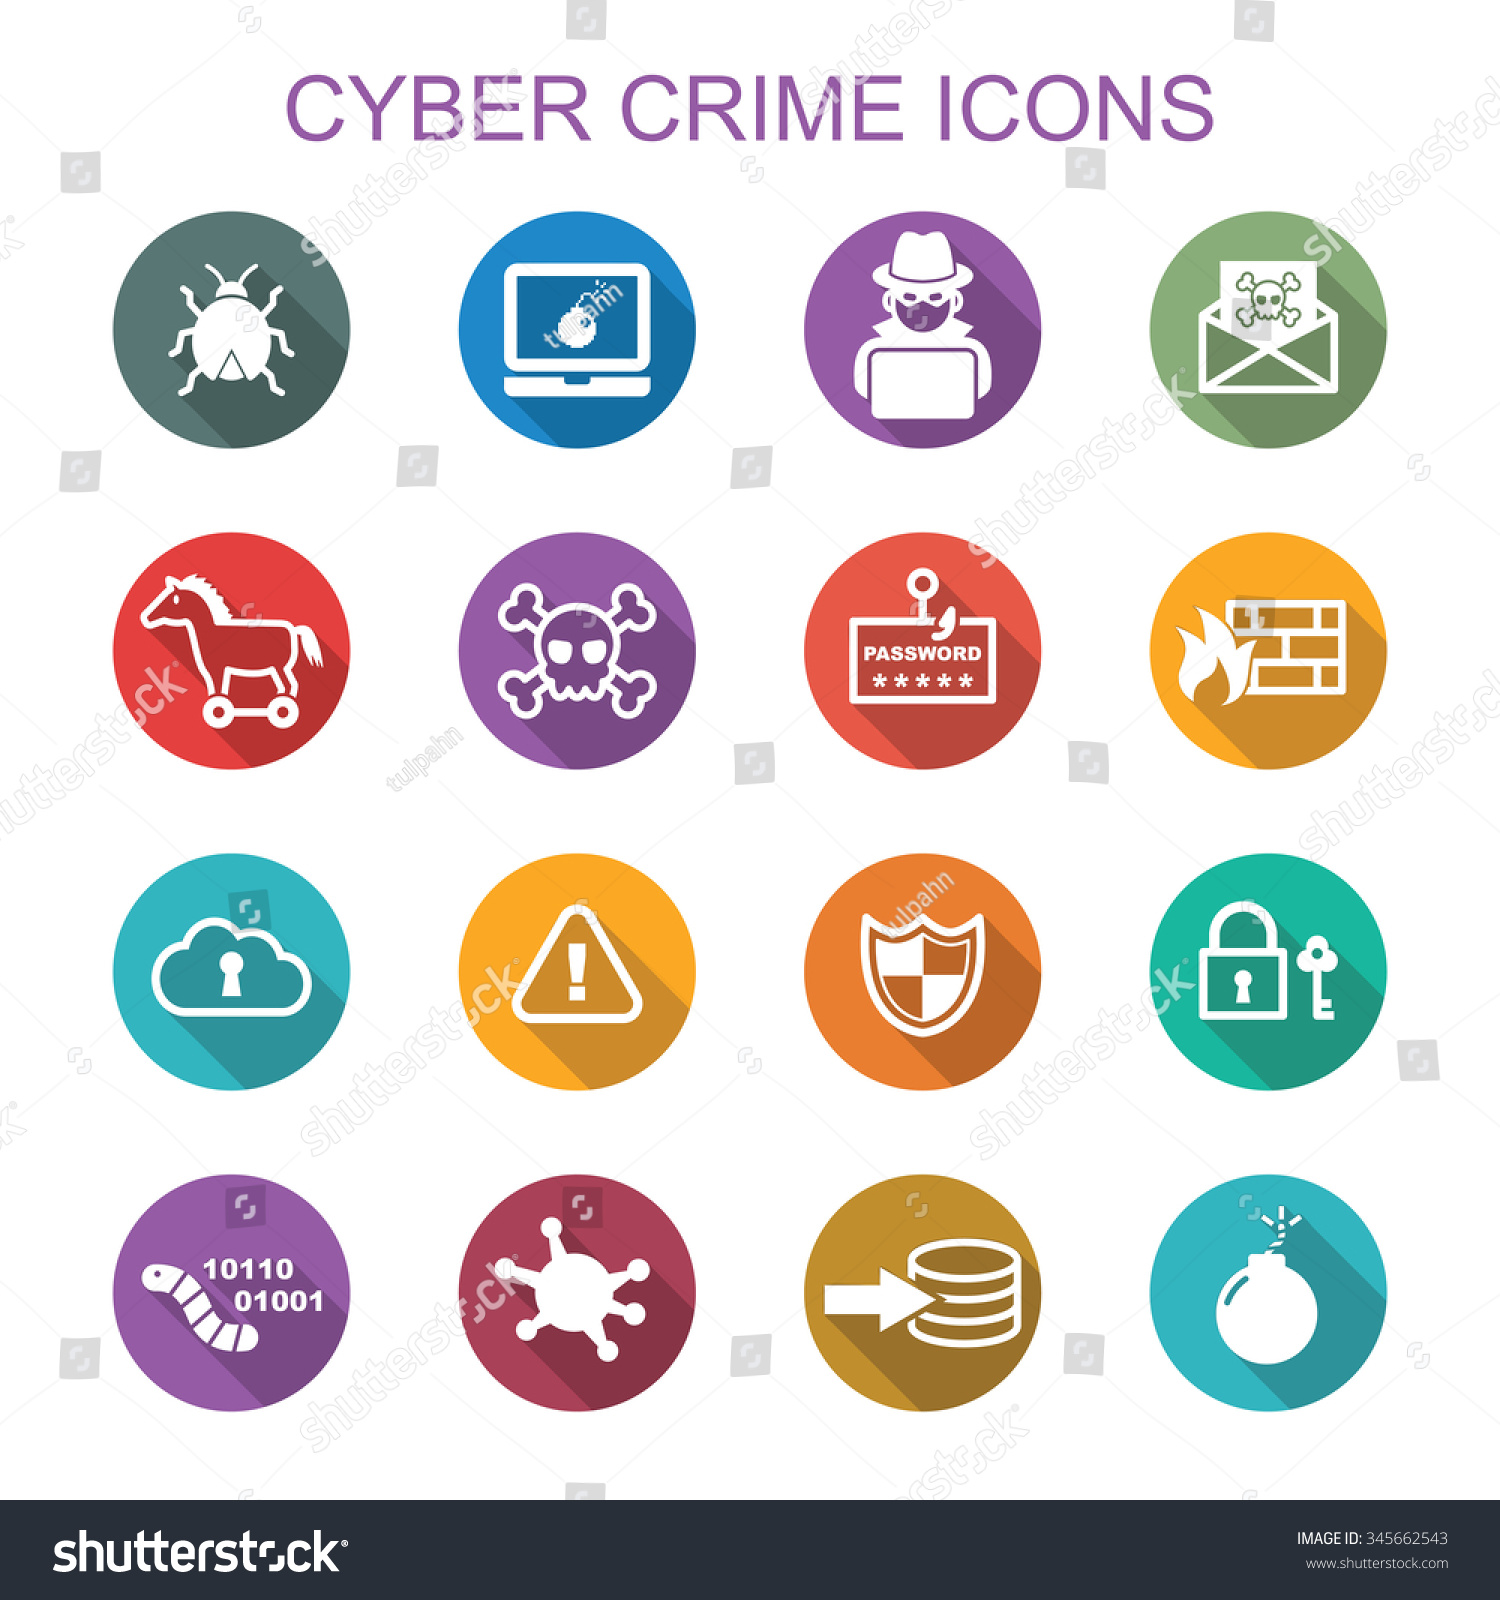 cyber crime long shadow icons flat stock vector 345662543